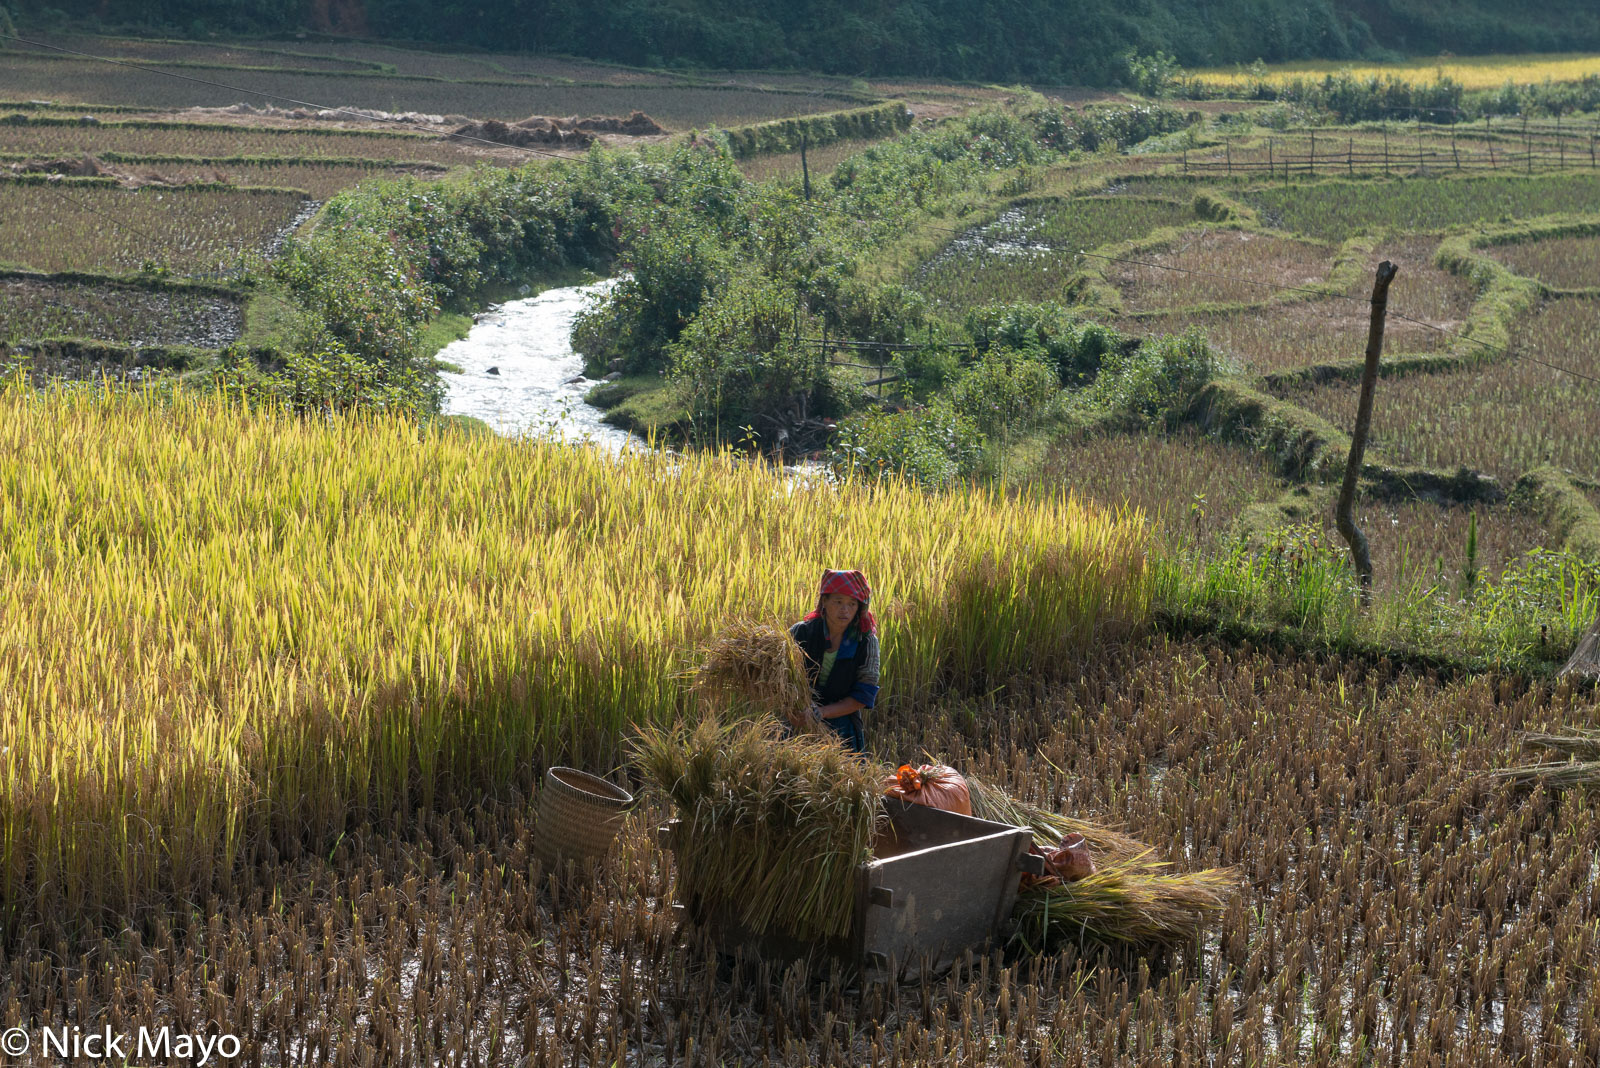 Miao,Paddy,Threshing,Vietnam,Wicker Basket,Yen Bai, photo